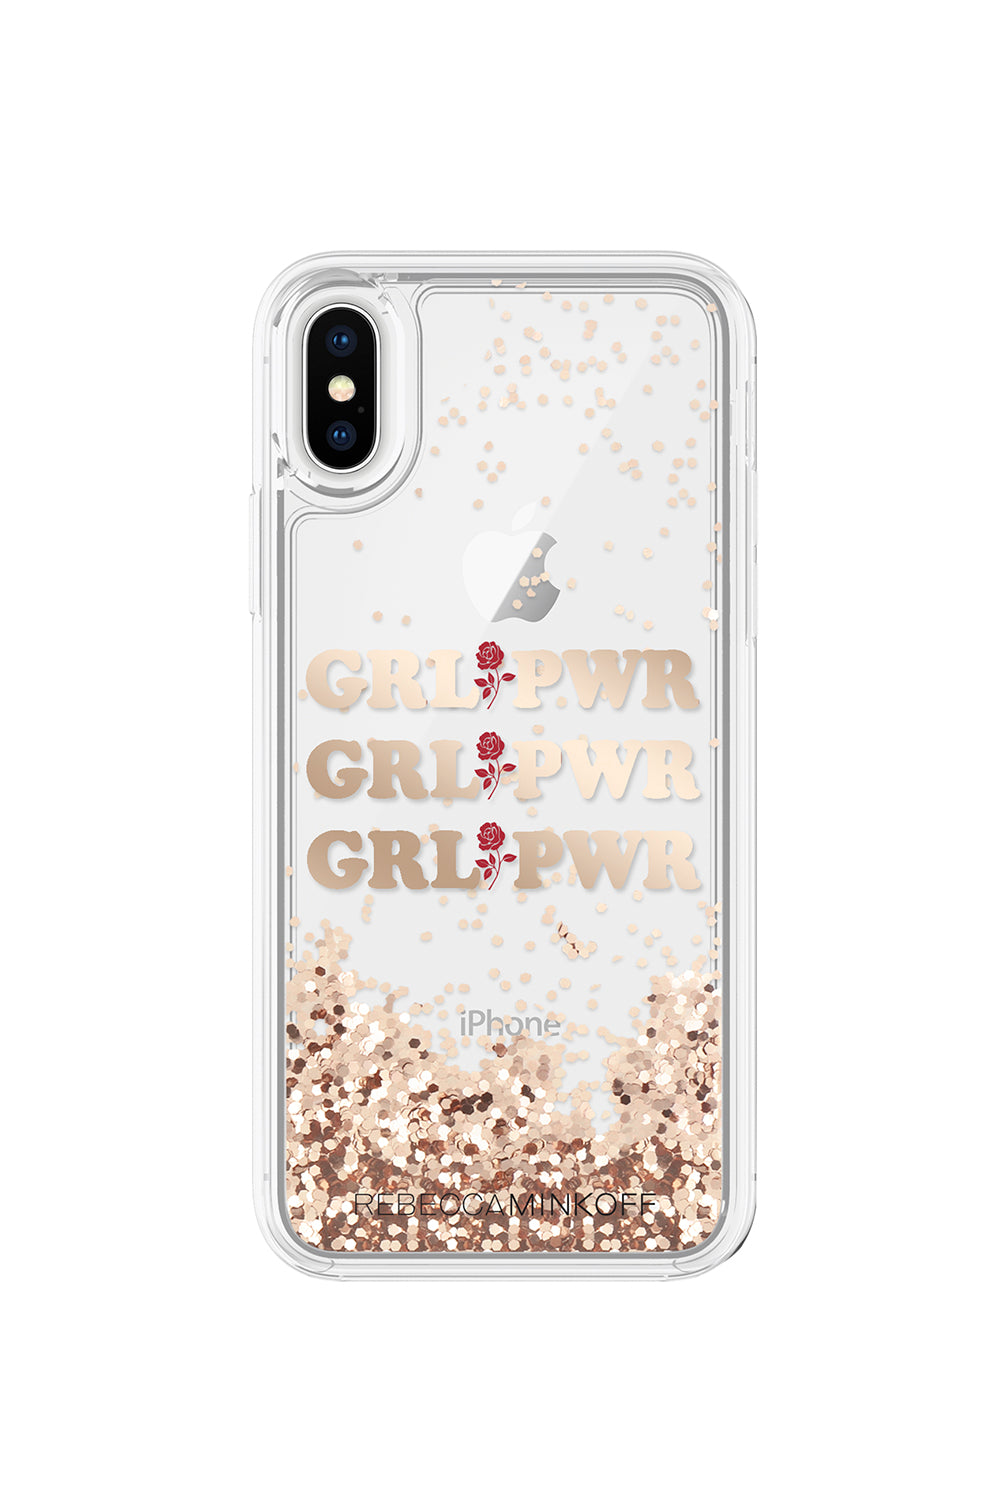 GRL PWR Glitterfall Case For iPhone X